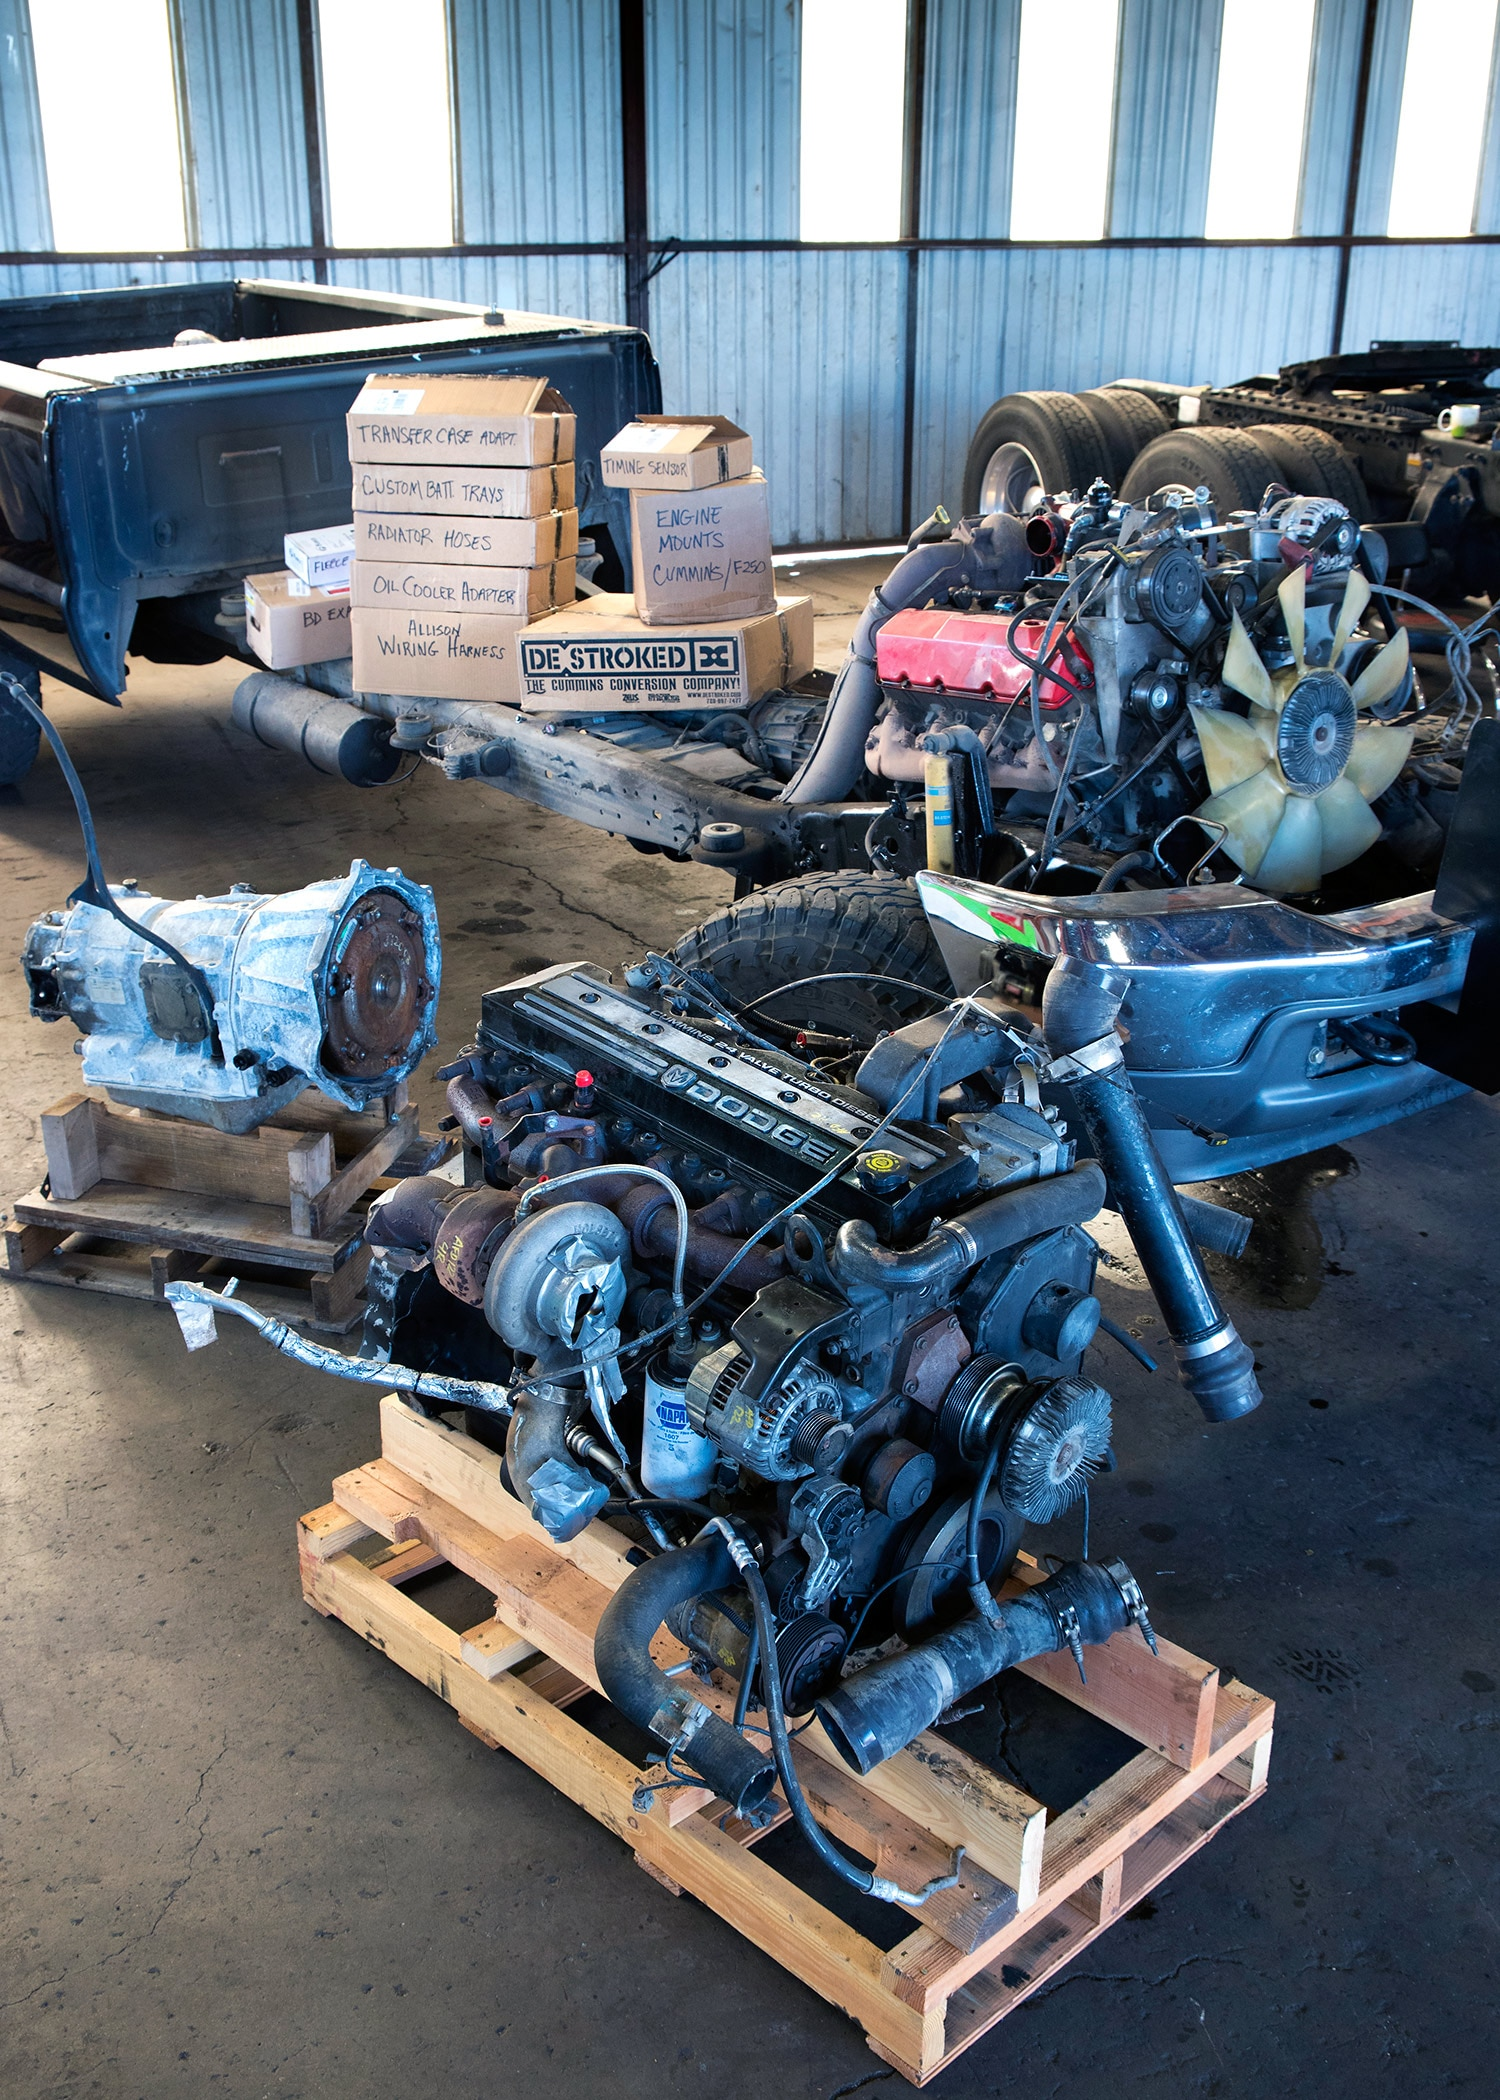 Swap a Ford 7 3L Power Stroke V-8 with a 5 9L Cummins I-6 and